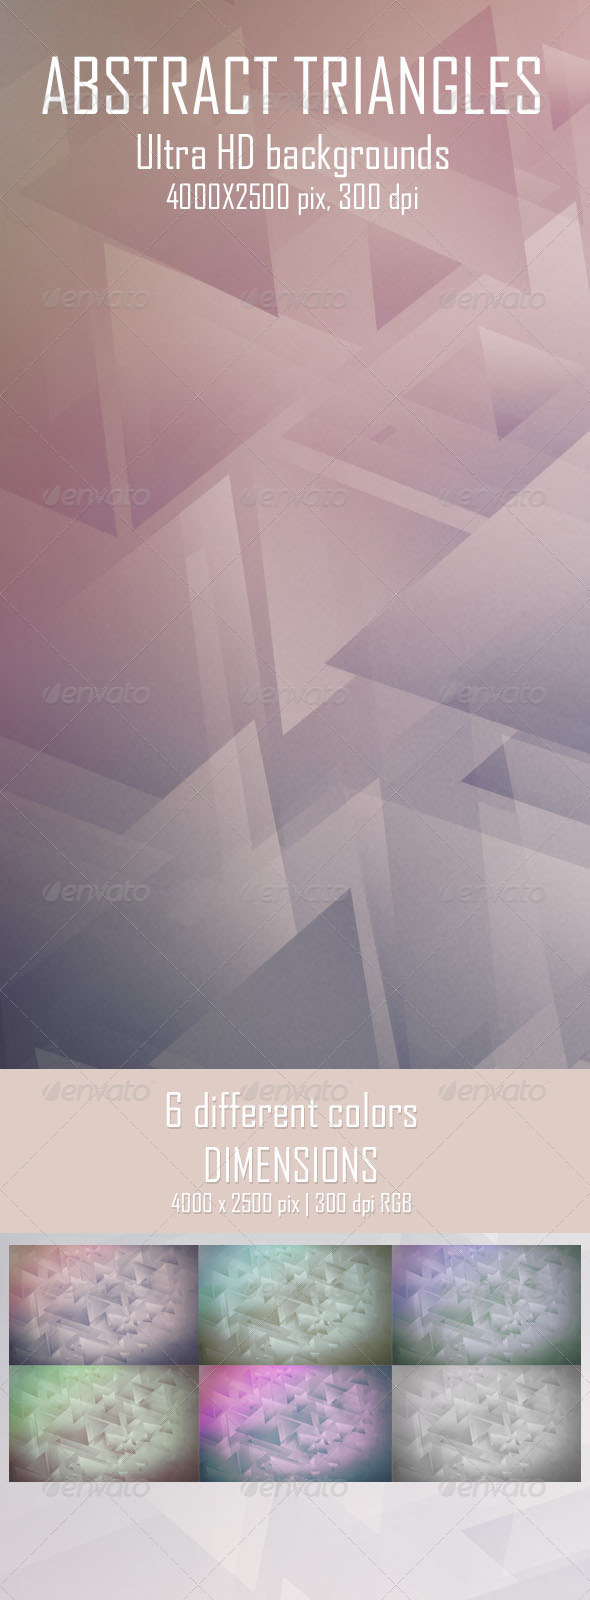 Abstract Triangles Backgrounds - Abstract Backgrounds